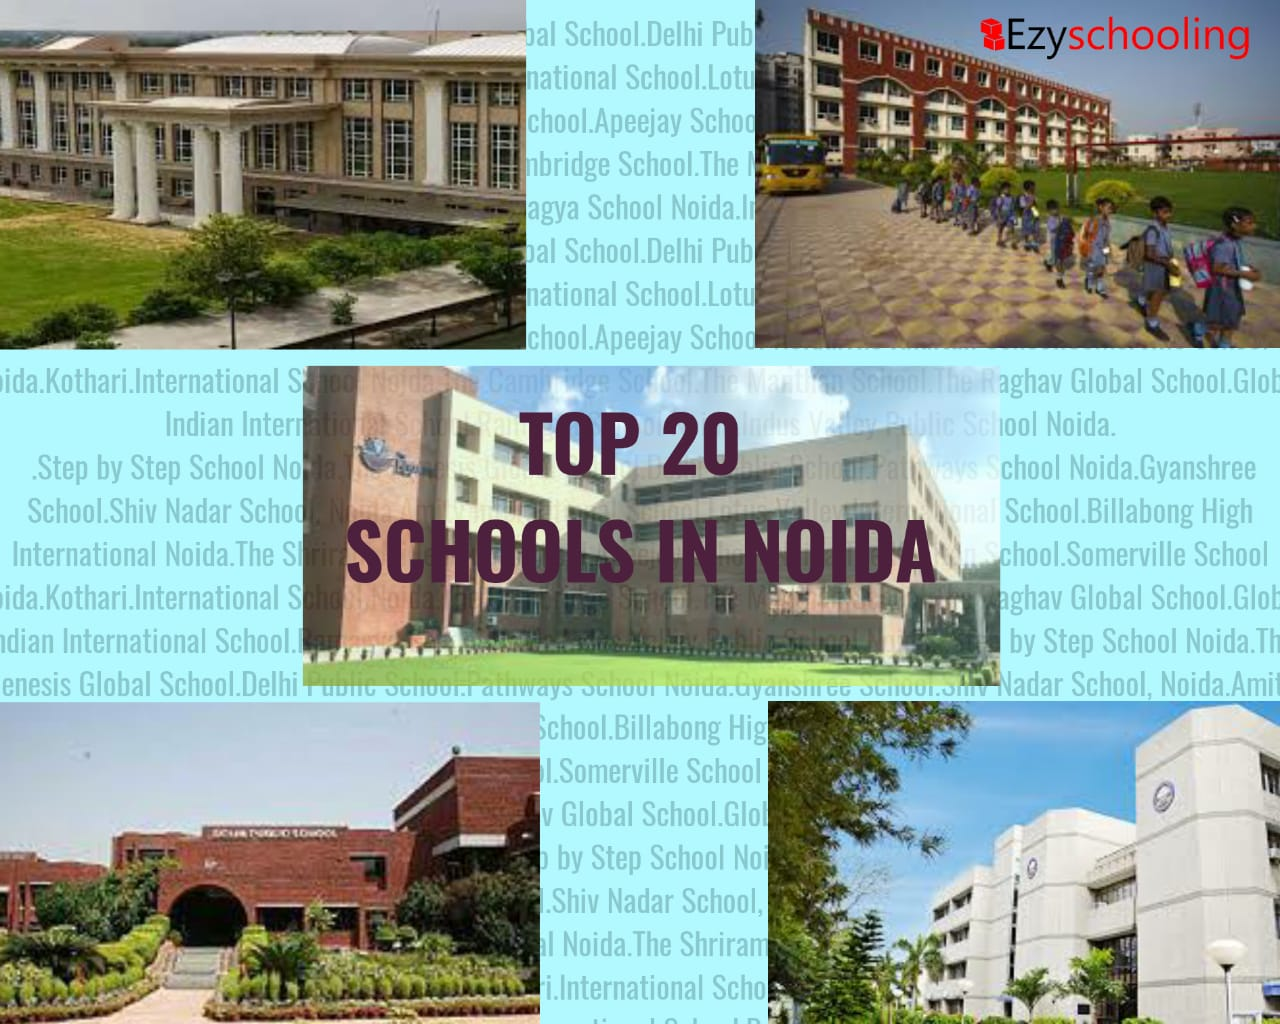 How Can An Affordable School In Noida Benefit The Community?